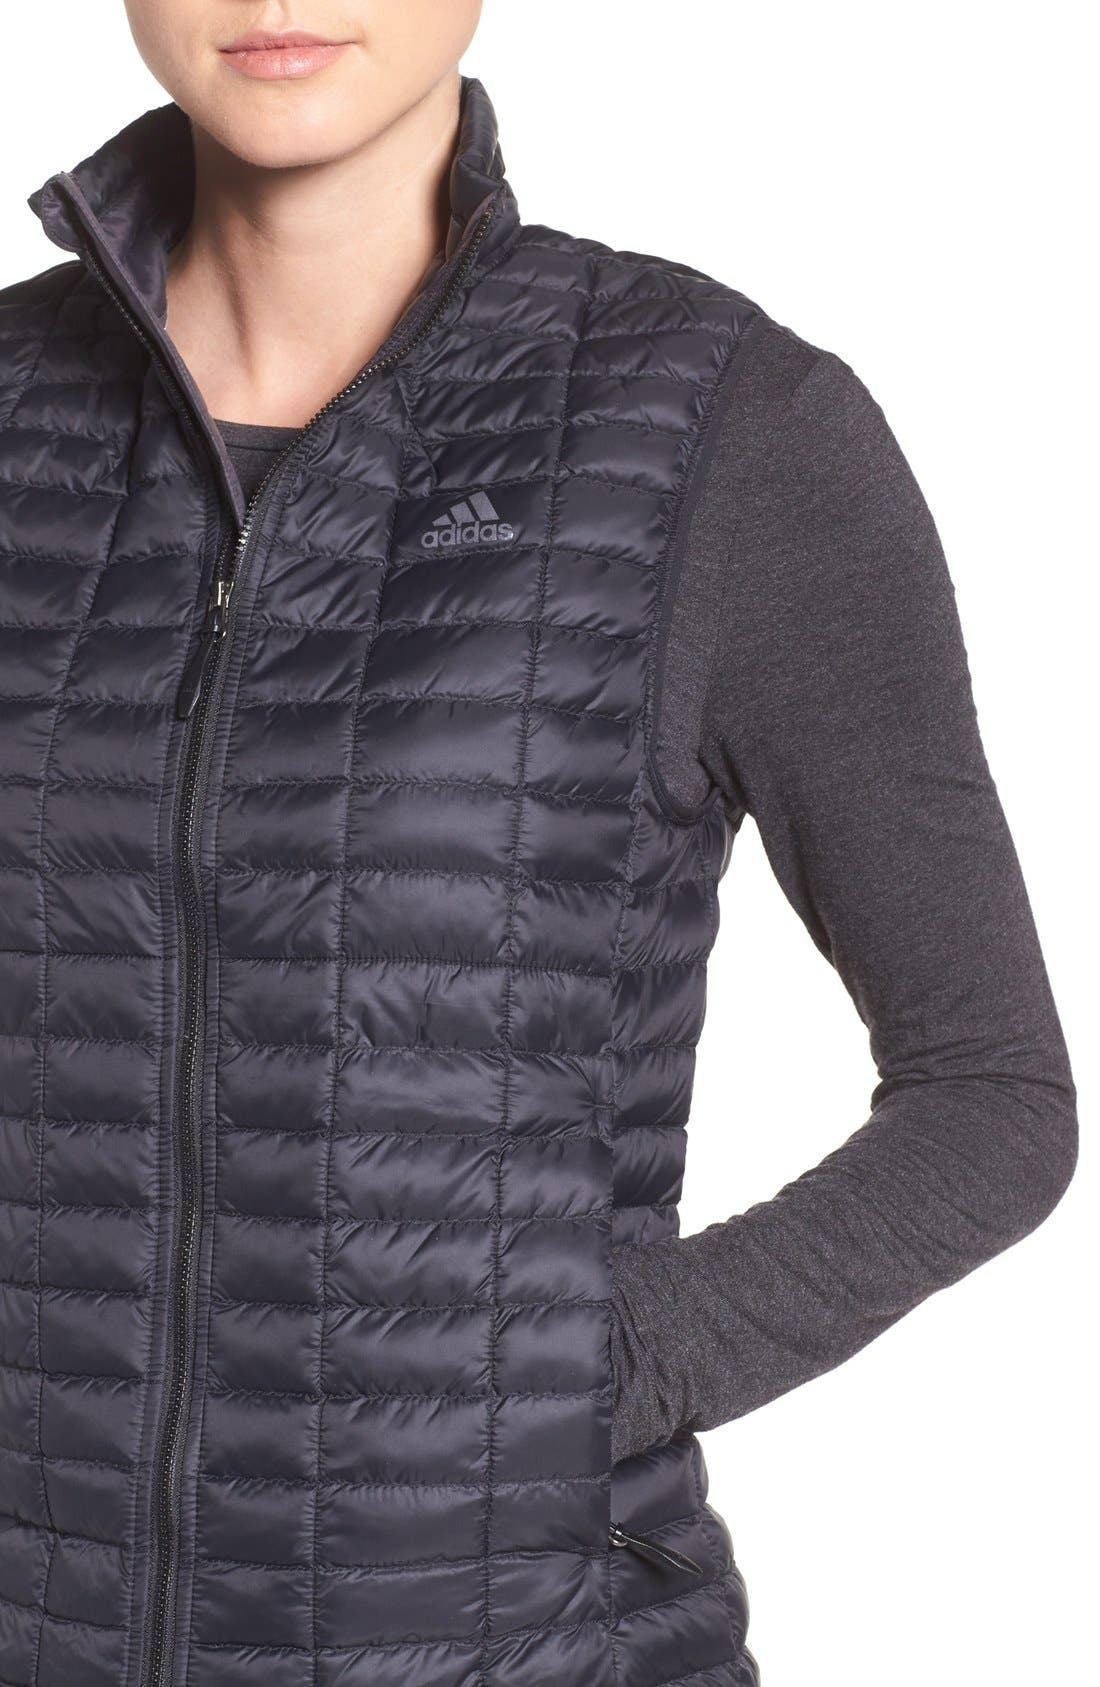 'Flyloft' Insulated Vest,                             Alternate thumbnail 4, color,                             Black/ Utility Black